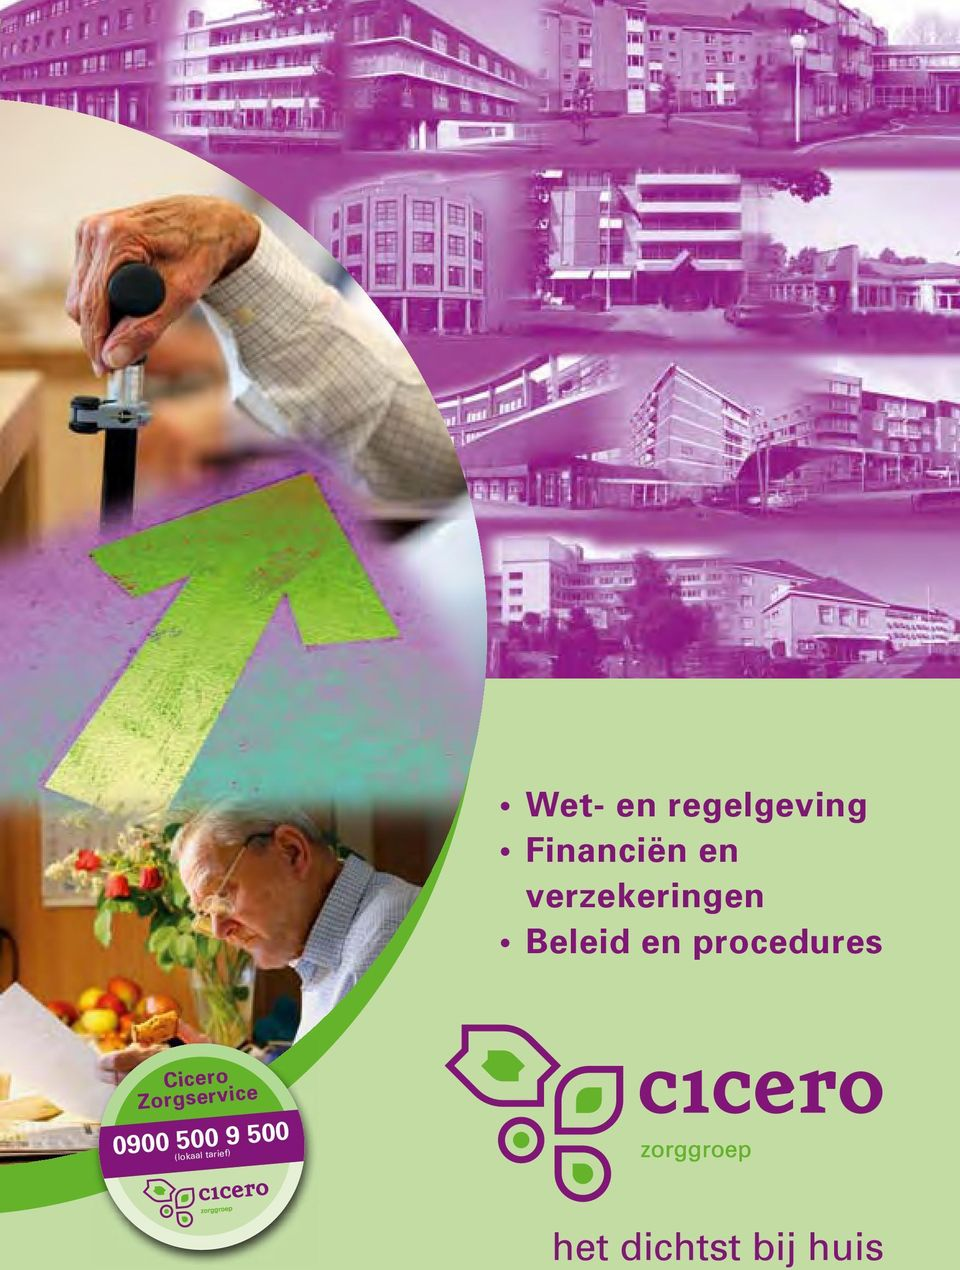 Beleid en procedures Cicero